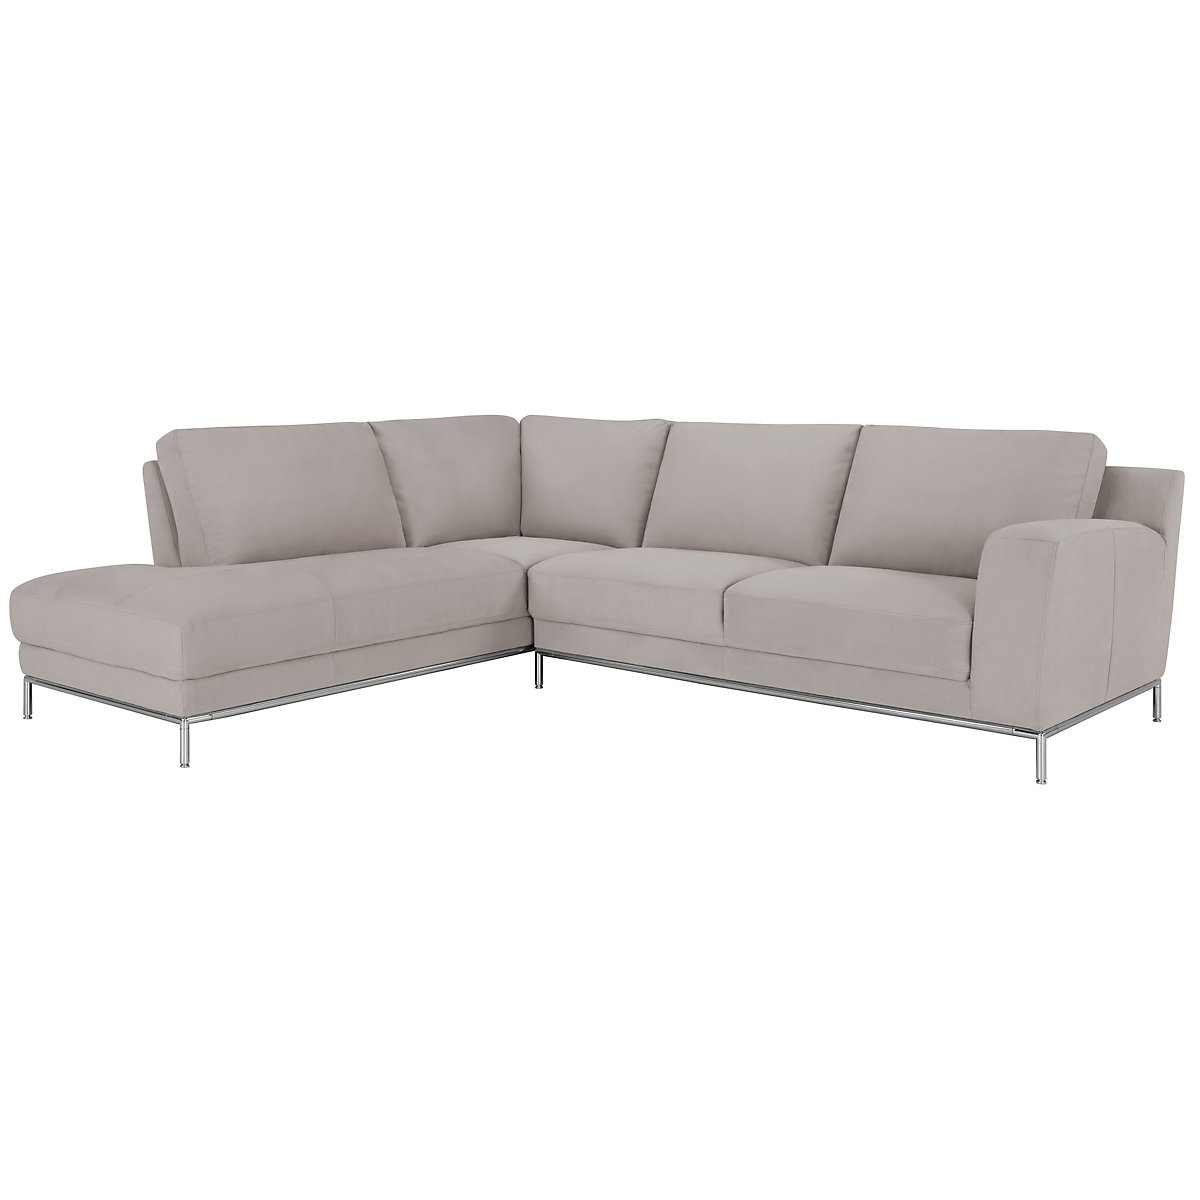 City furniture wynn lt gray microfiber left chaise sectional for Gray microfiber sectional sofa with chaise